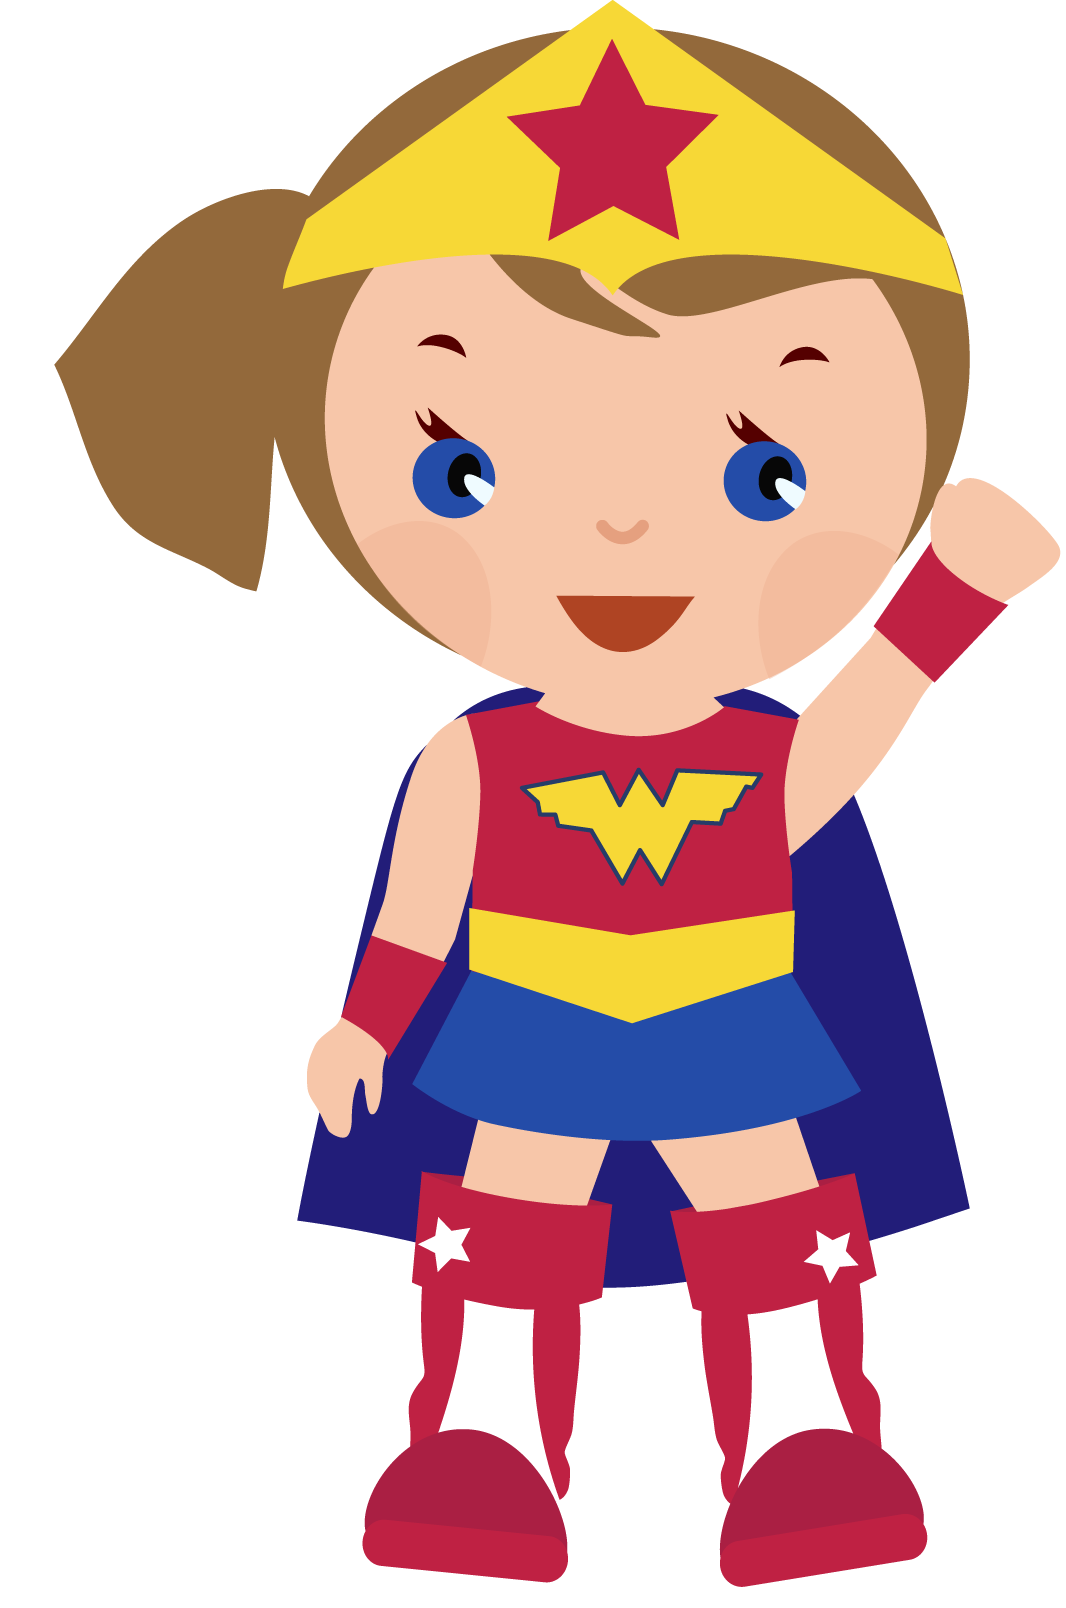 Supergirl clipart png. Superhero printables pinterest party